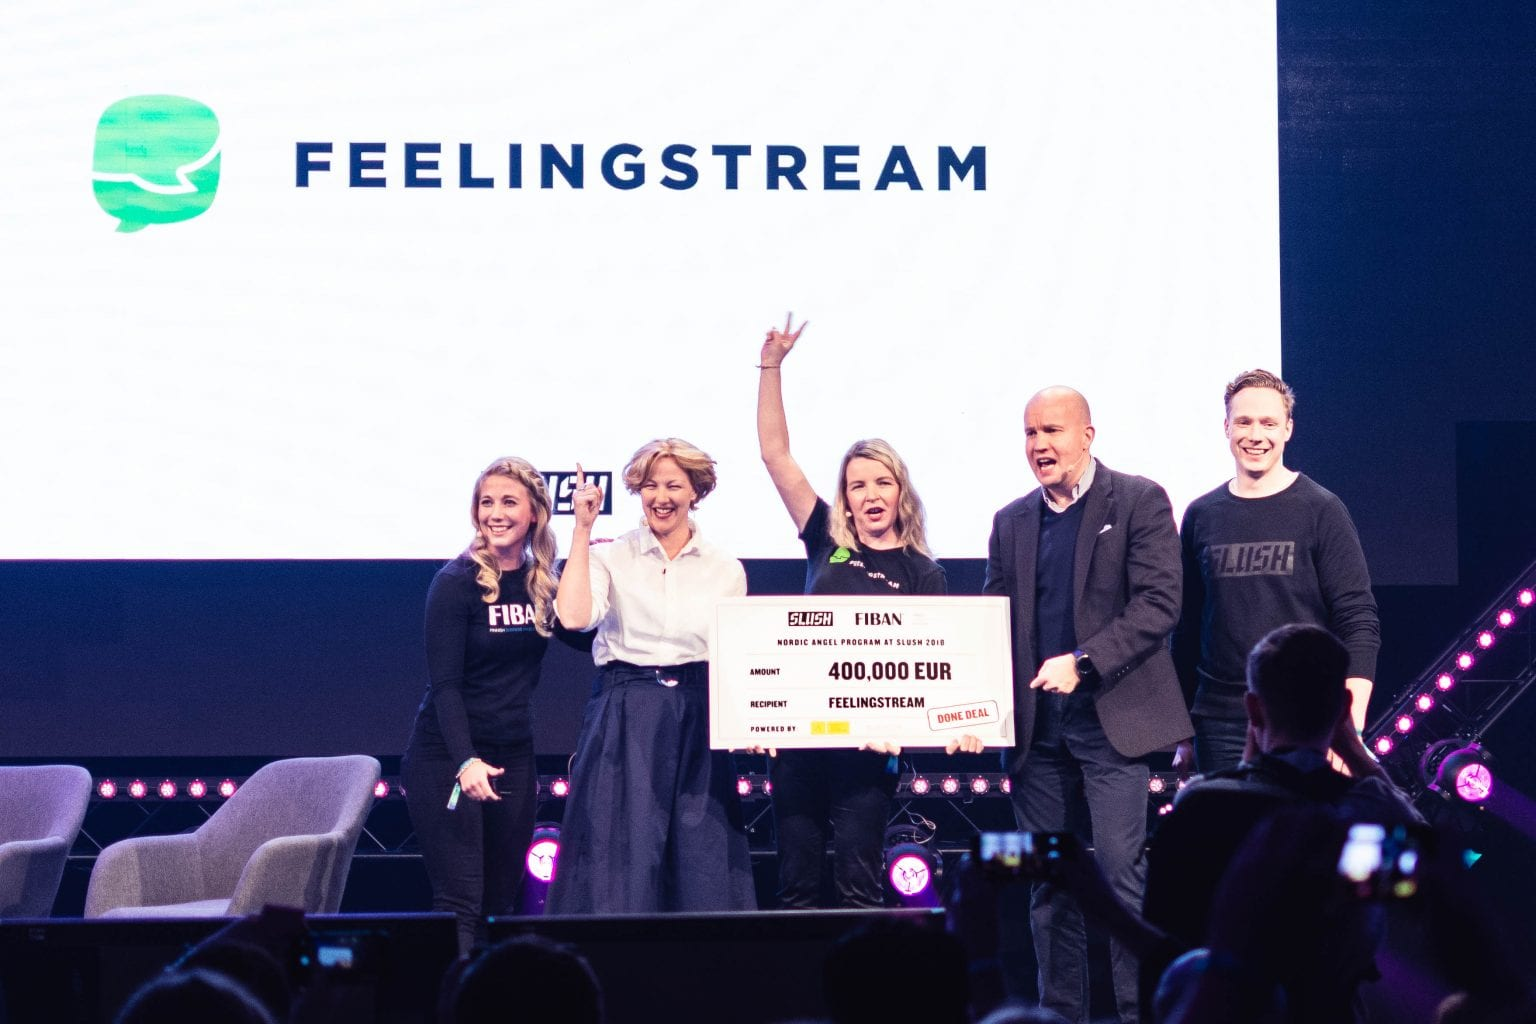 Jobs-Feelingstream-FiBAN